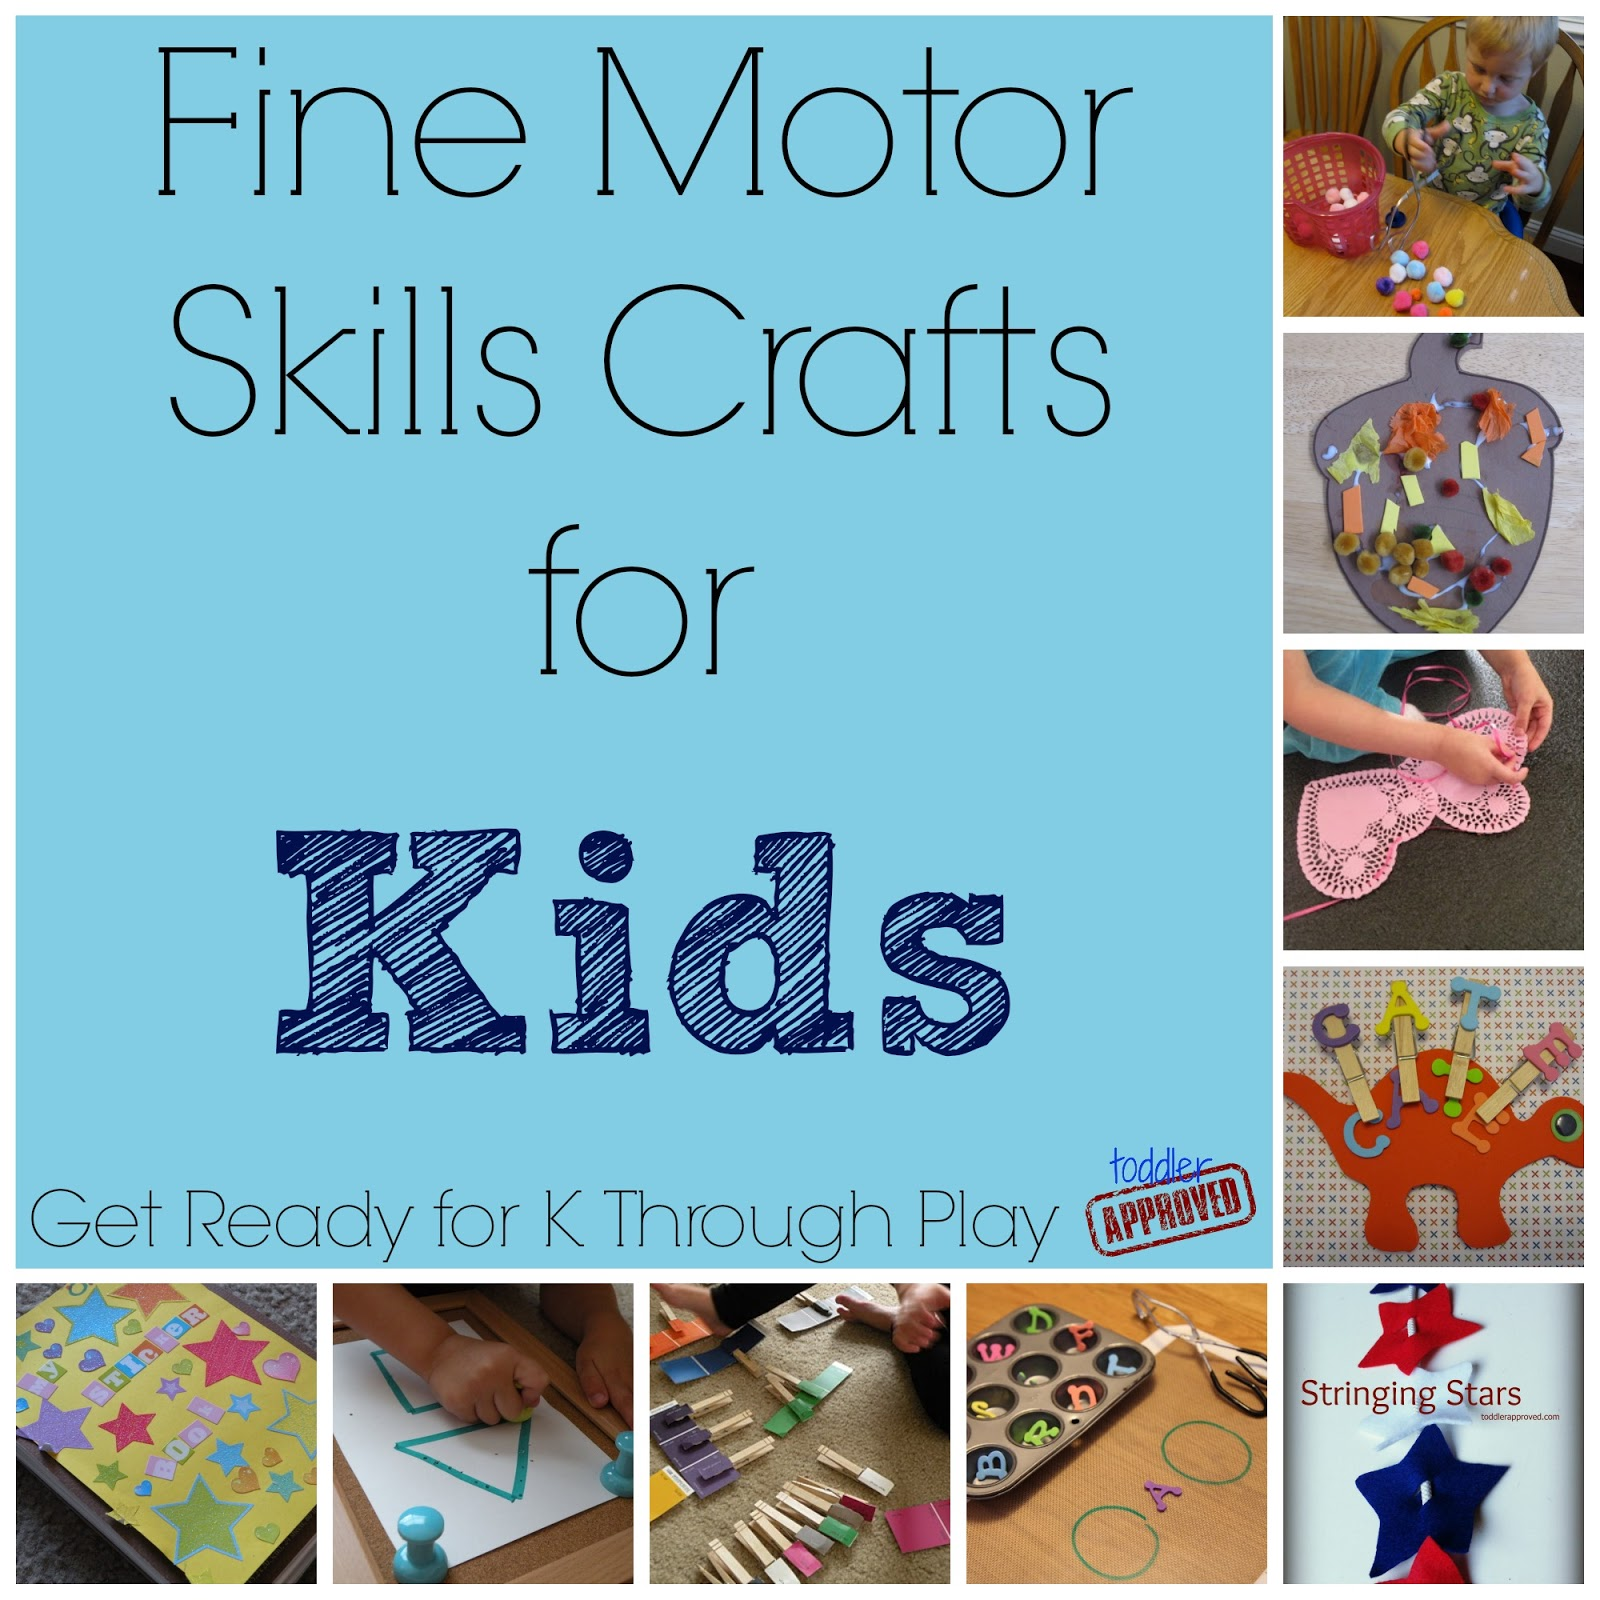 Toddler Approved Fine Motor Skills Crafts For Kids Get